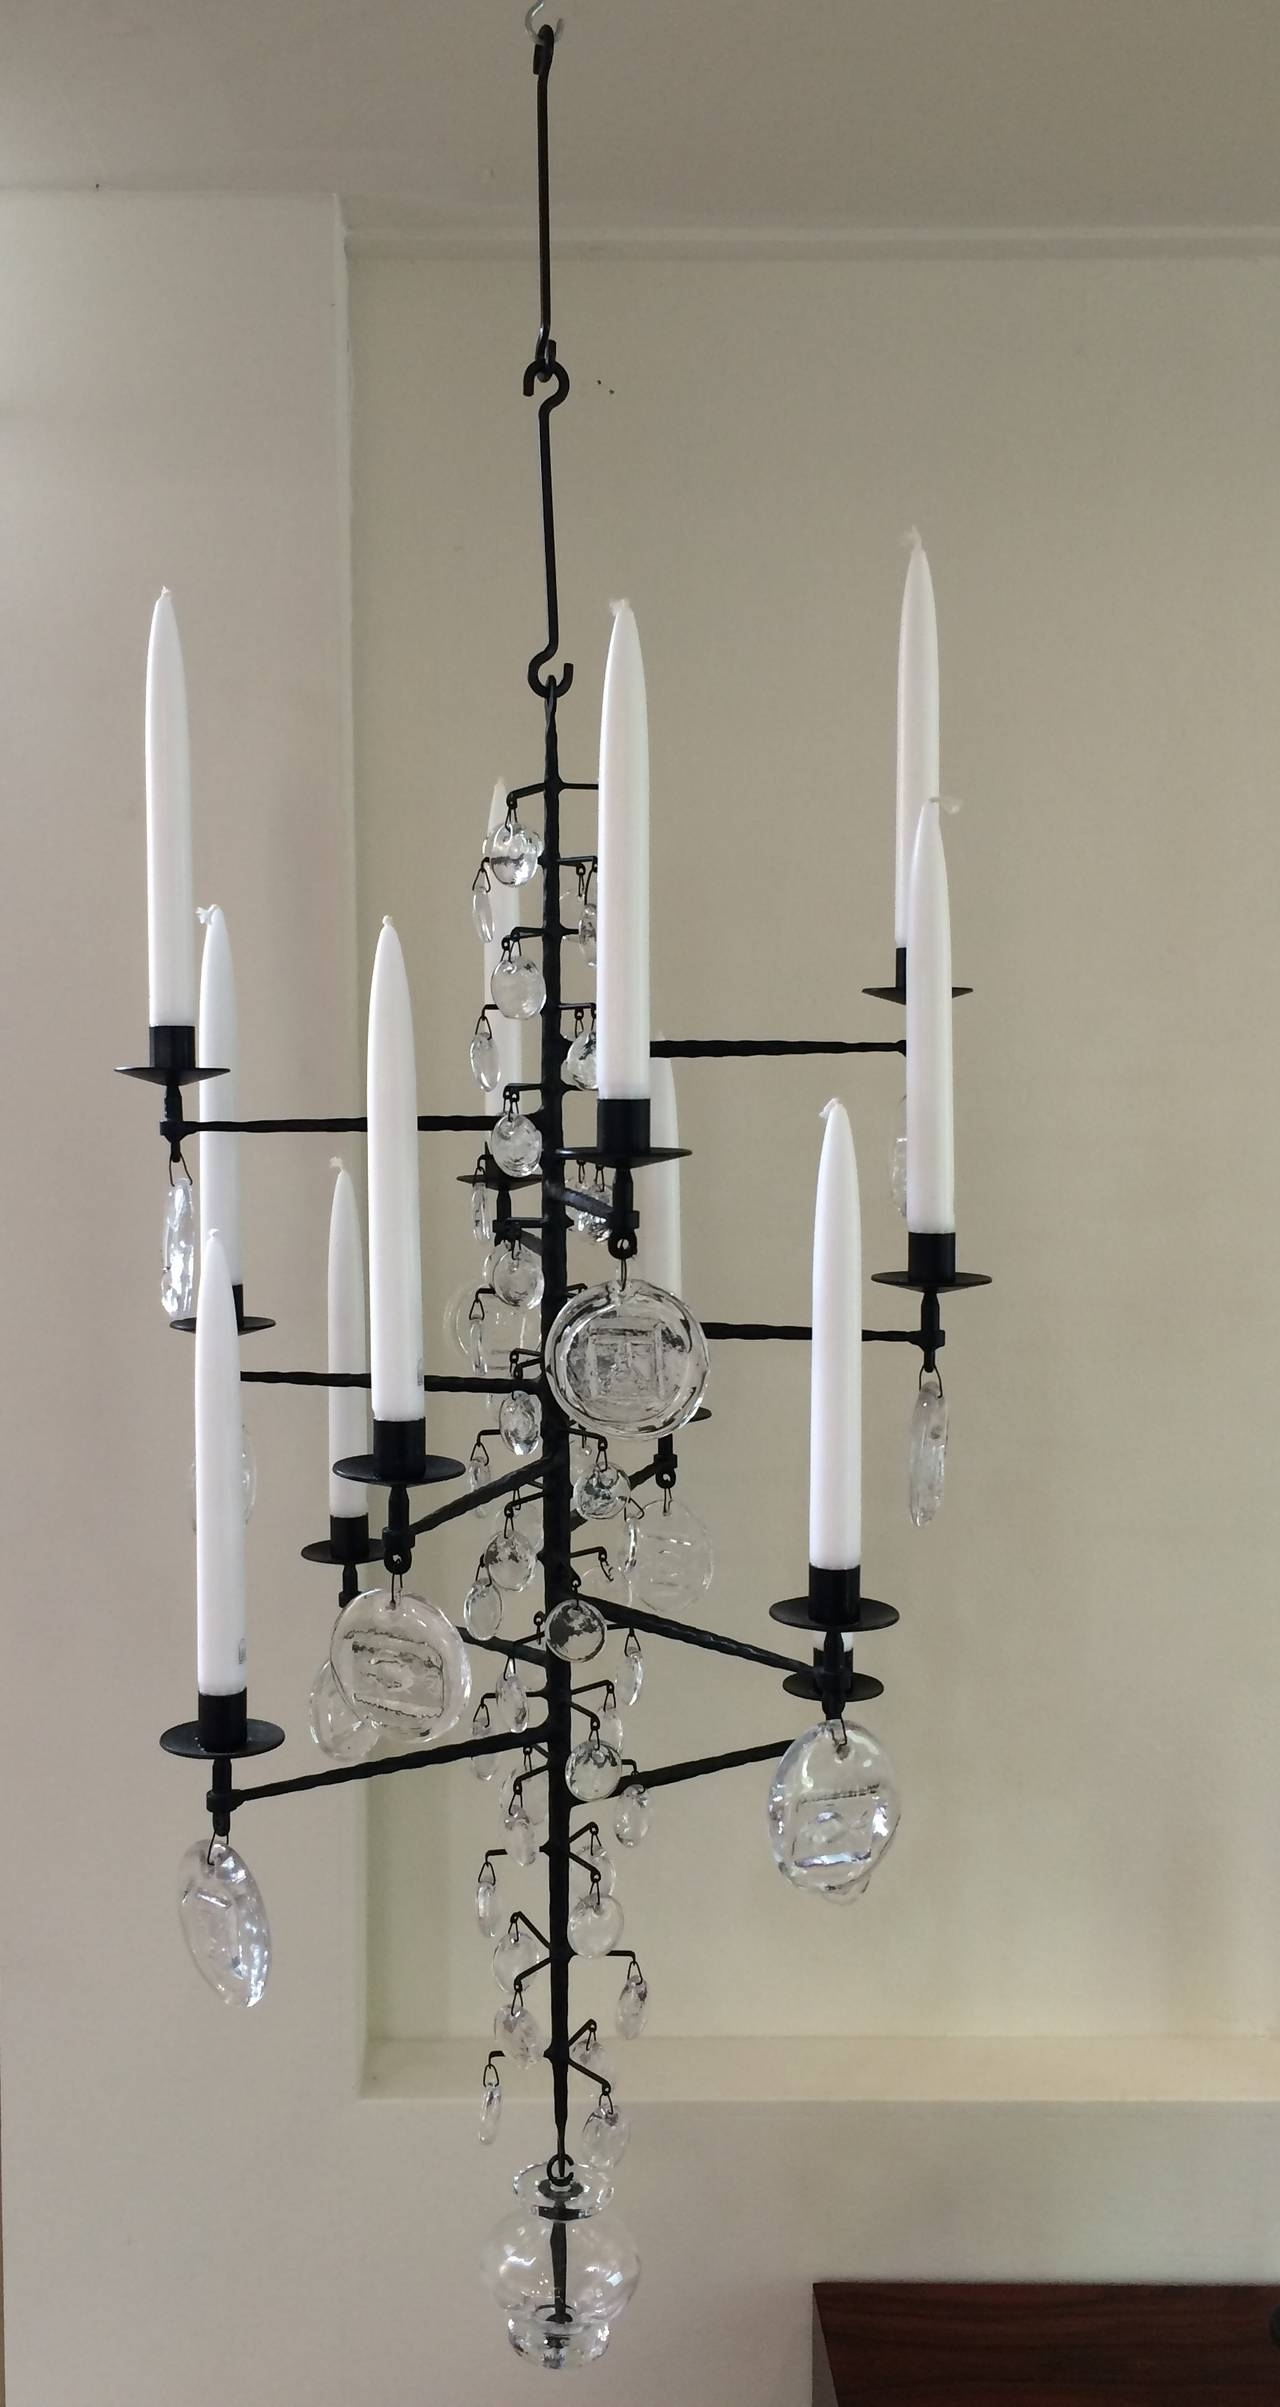 Newest Wrought Iron And Clear Glass 12 Arm Chandeliererik Hoglund, Boda Regarding Cast Iron Chandelier (View 18 of 20)